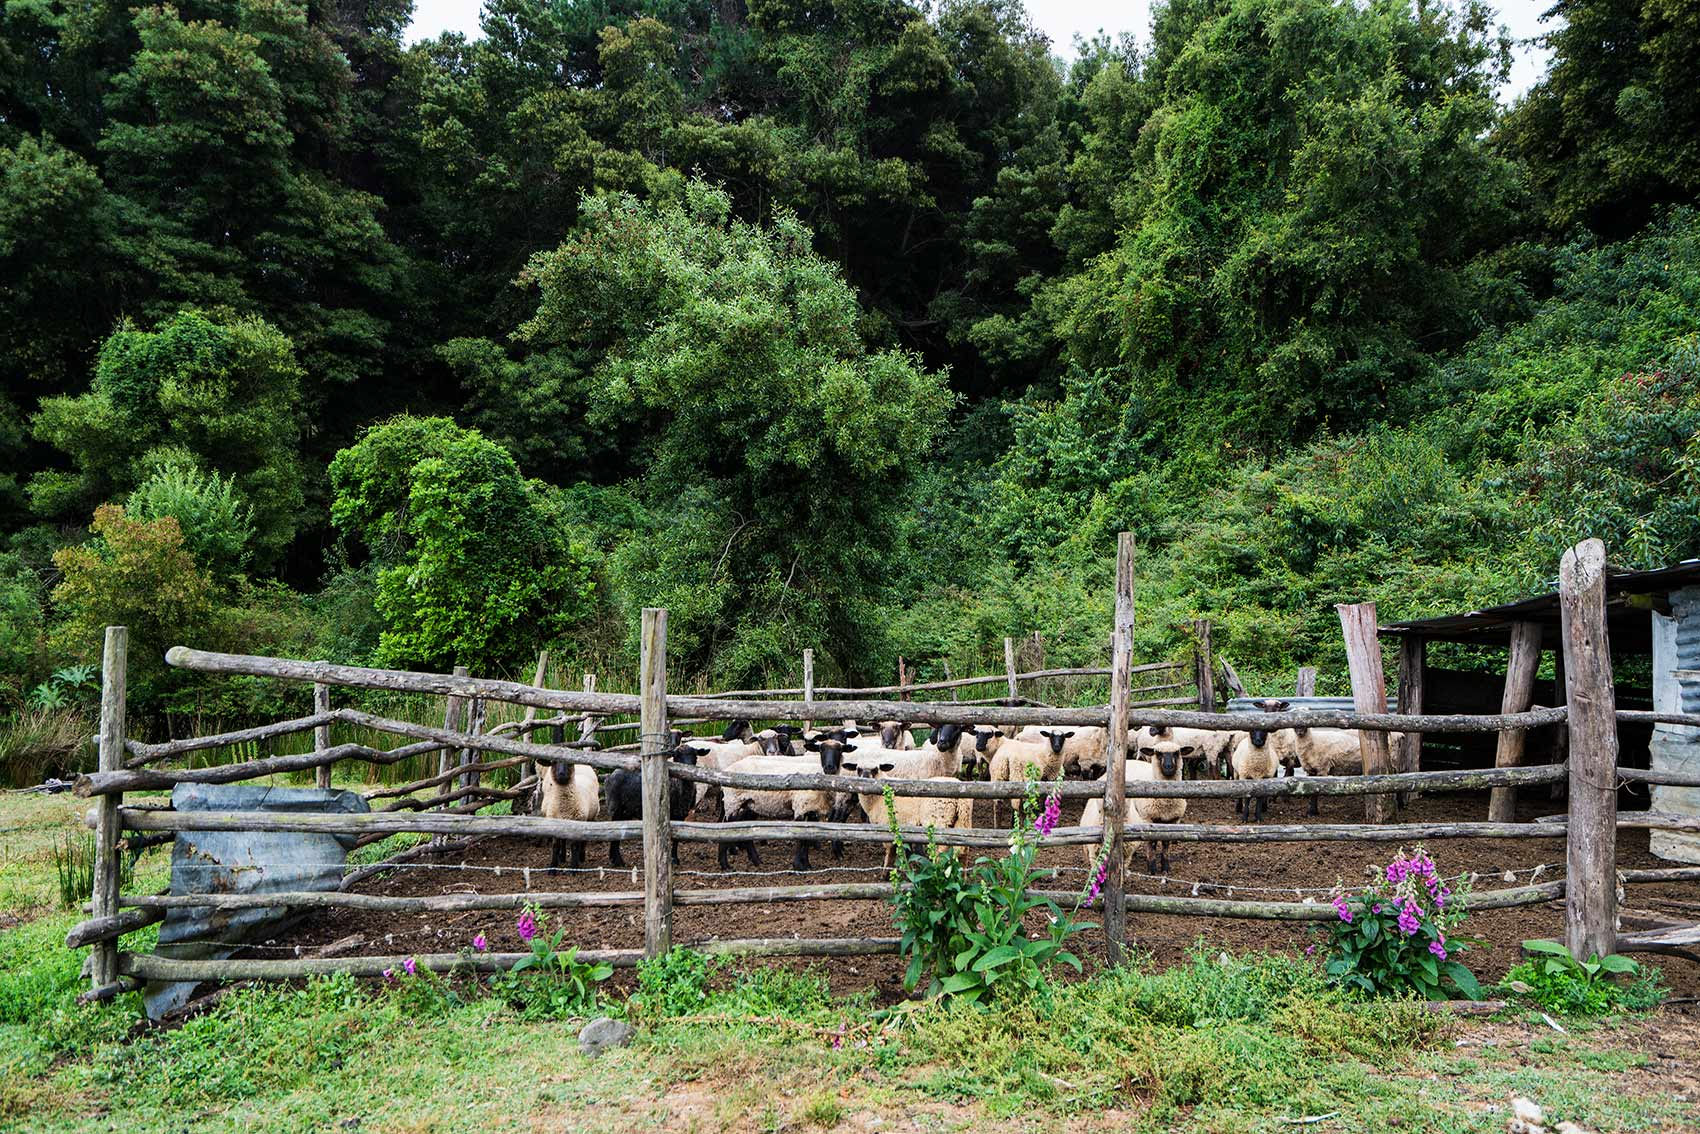 Lake_Lanalhue_Sheep